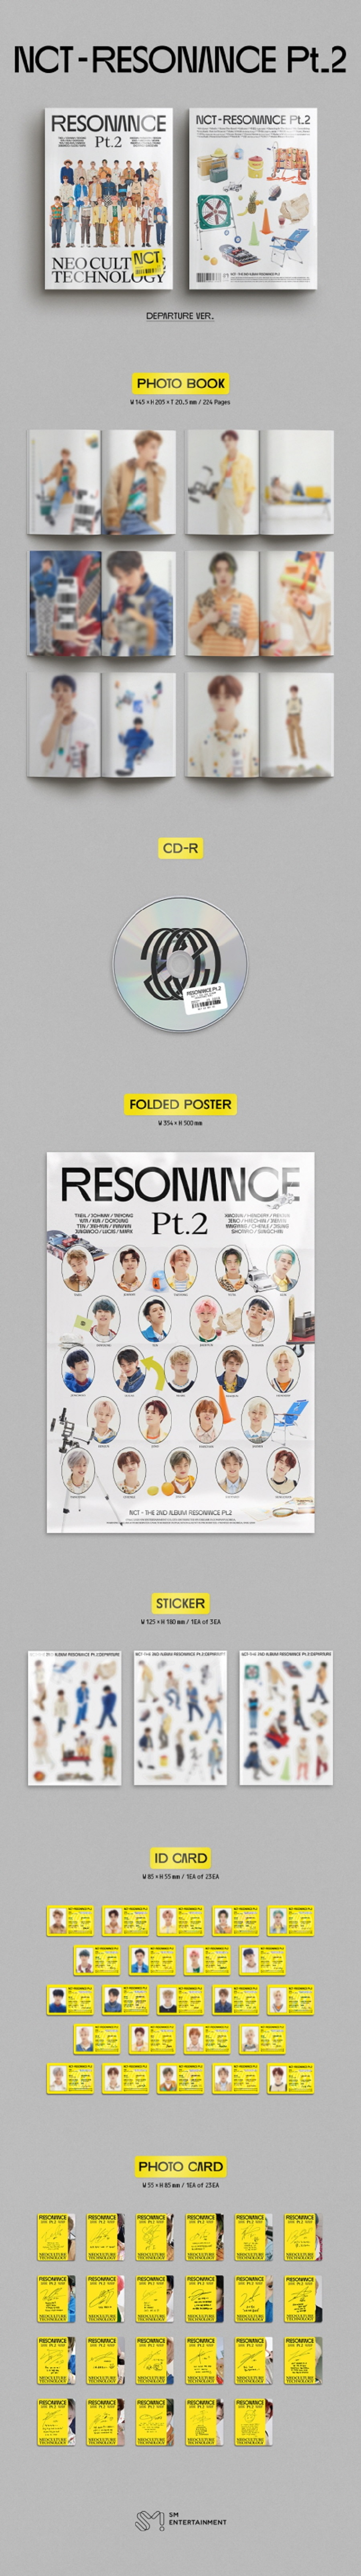 NCT(엔시티) - The 2nd Album RESONANCE Pt.2 [Departure Ver.]